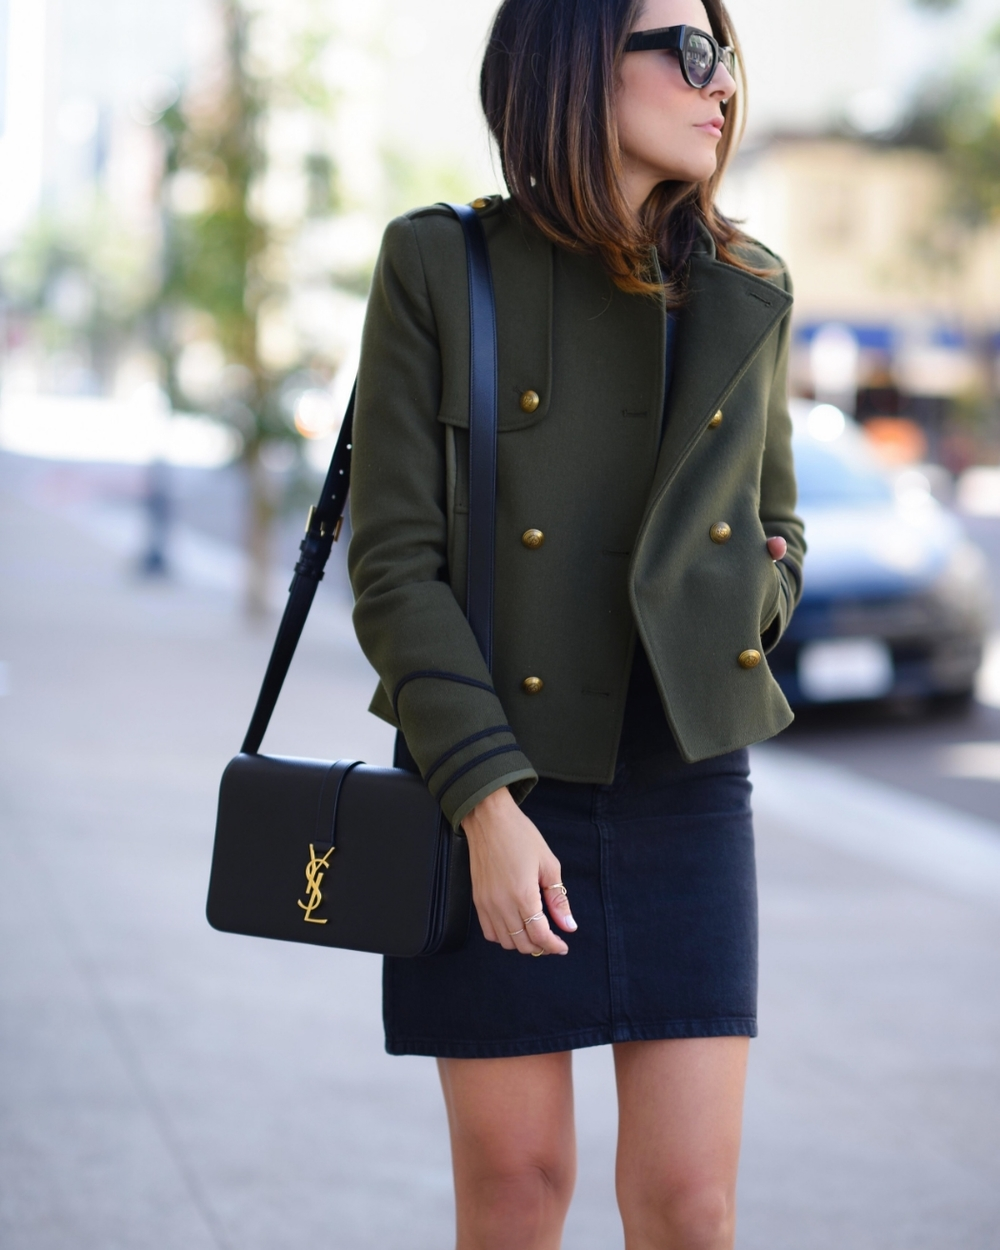 Military_Zara_Streetstyle_LucysWhims_IsabelMarant_SaintLaurent_SanDiego_DenimMini_Downtown.jpg